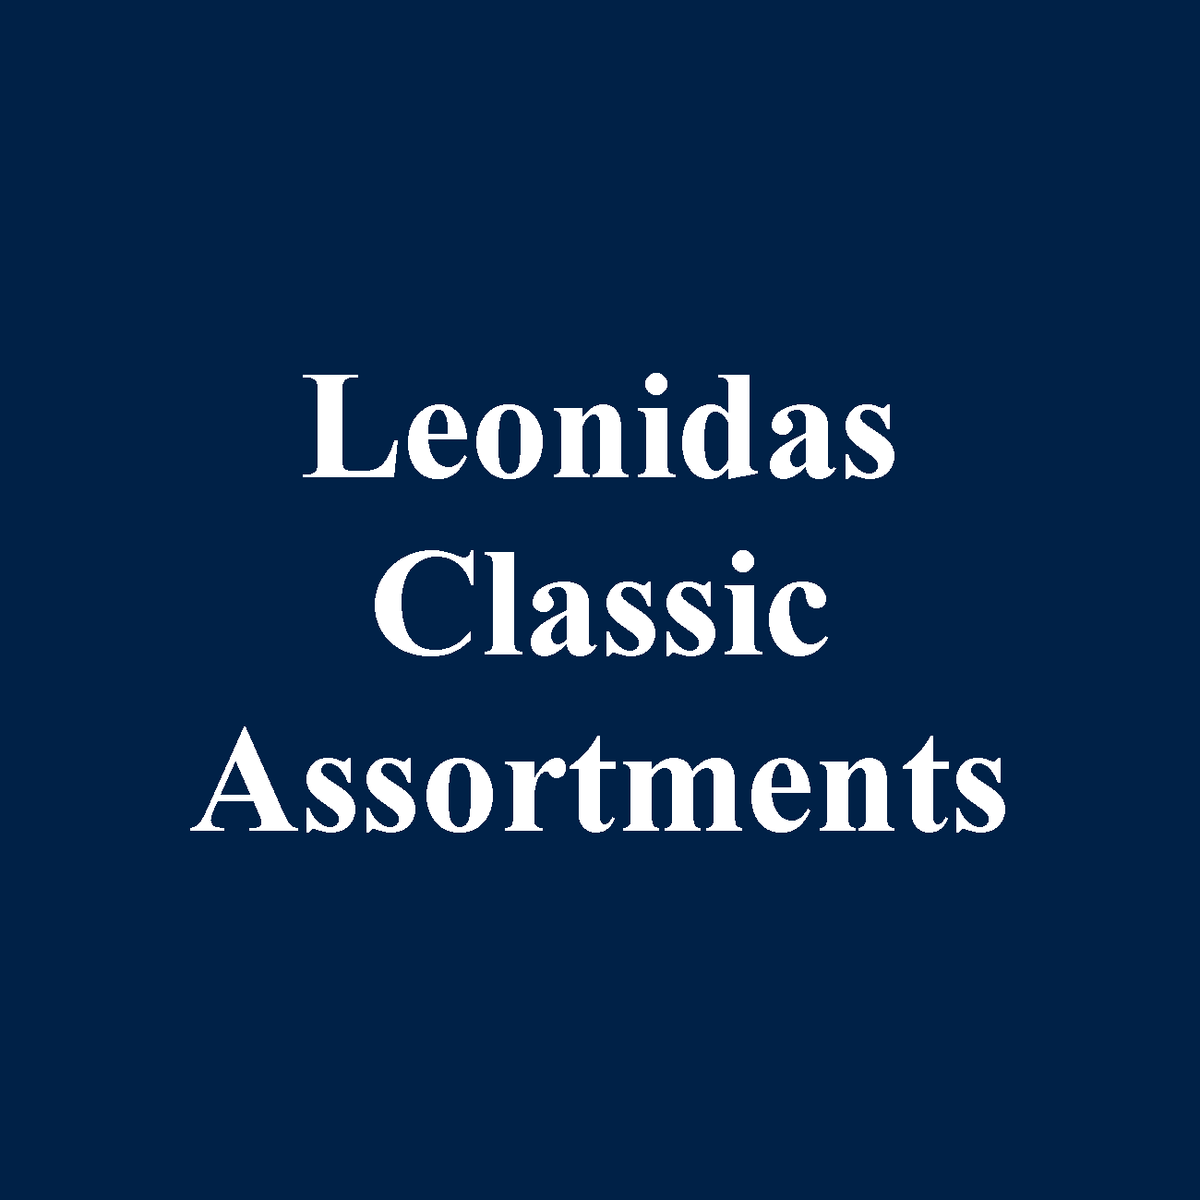 Leonidas Belgian Chocolate Classic Assortments